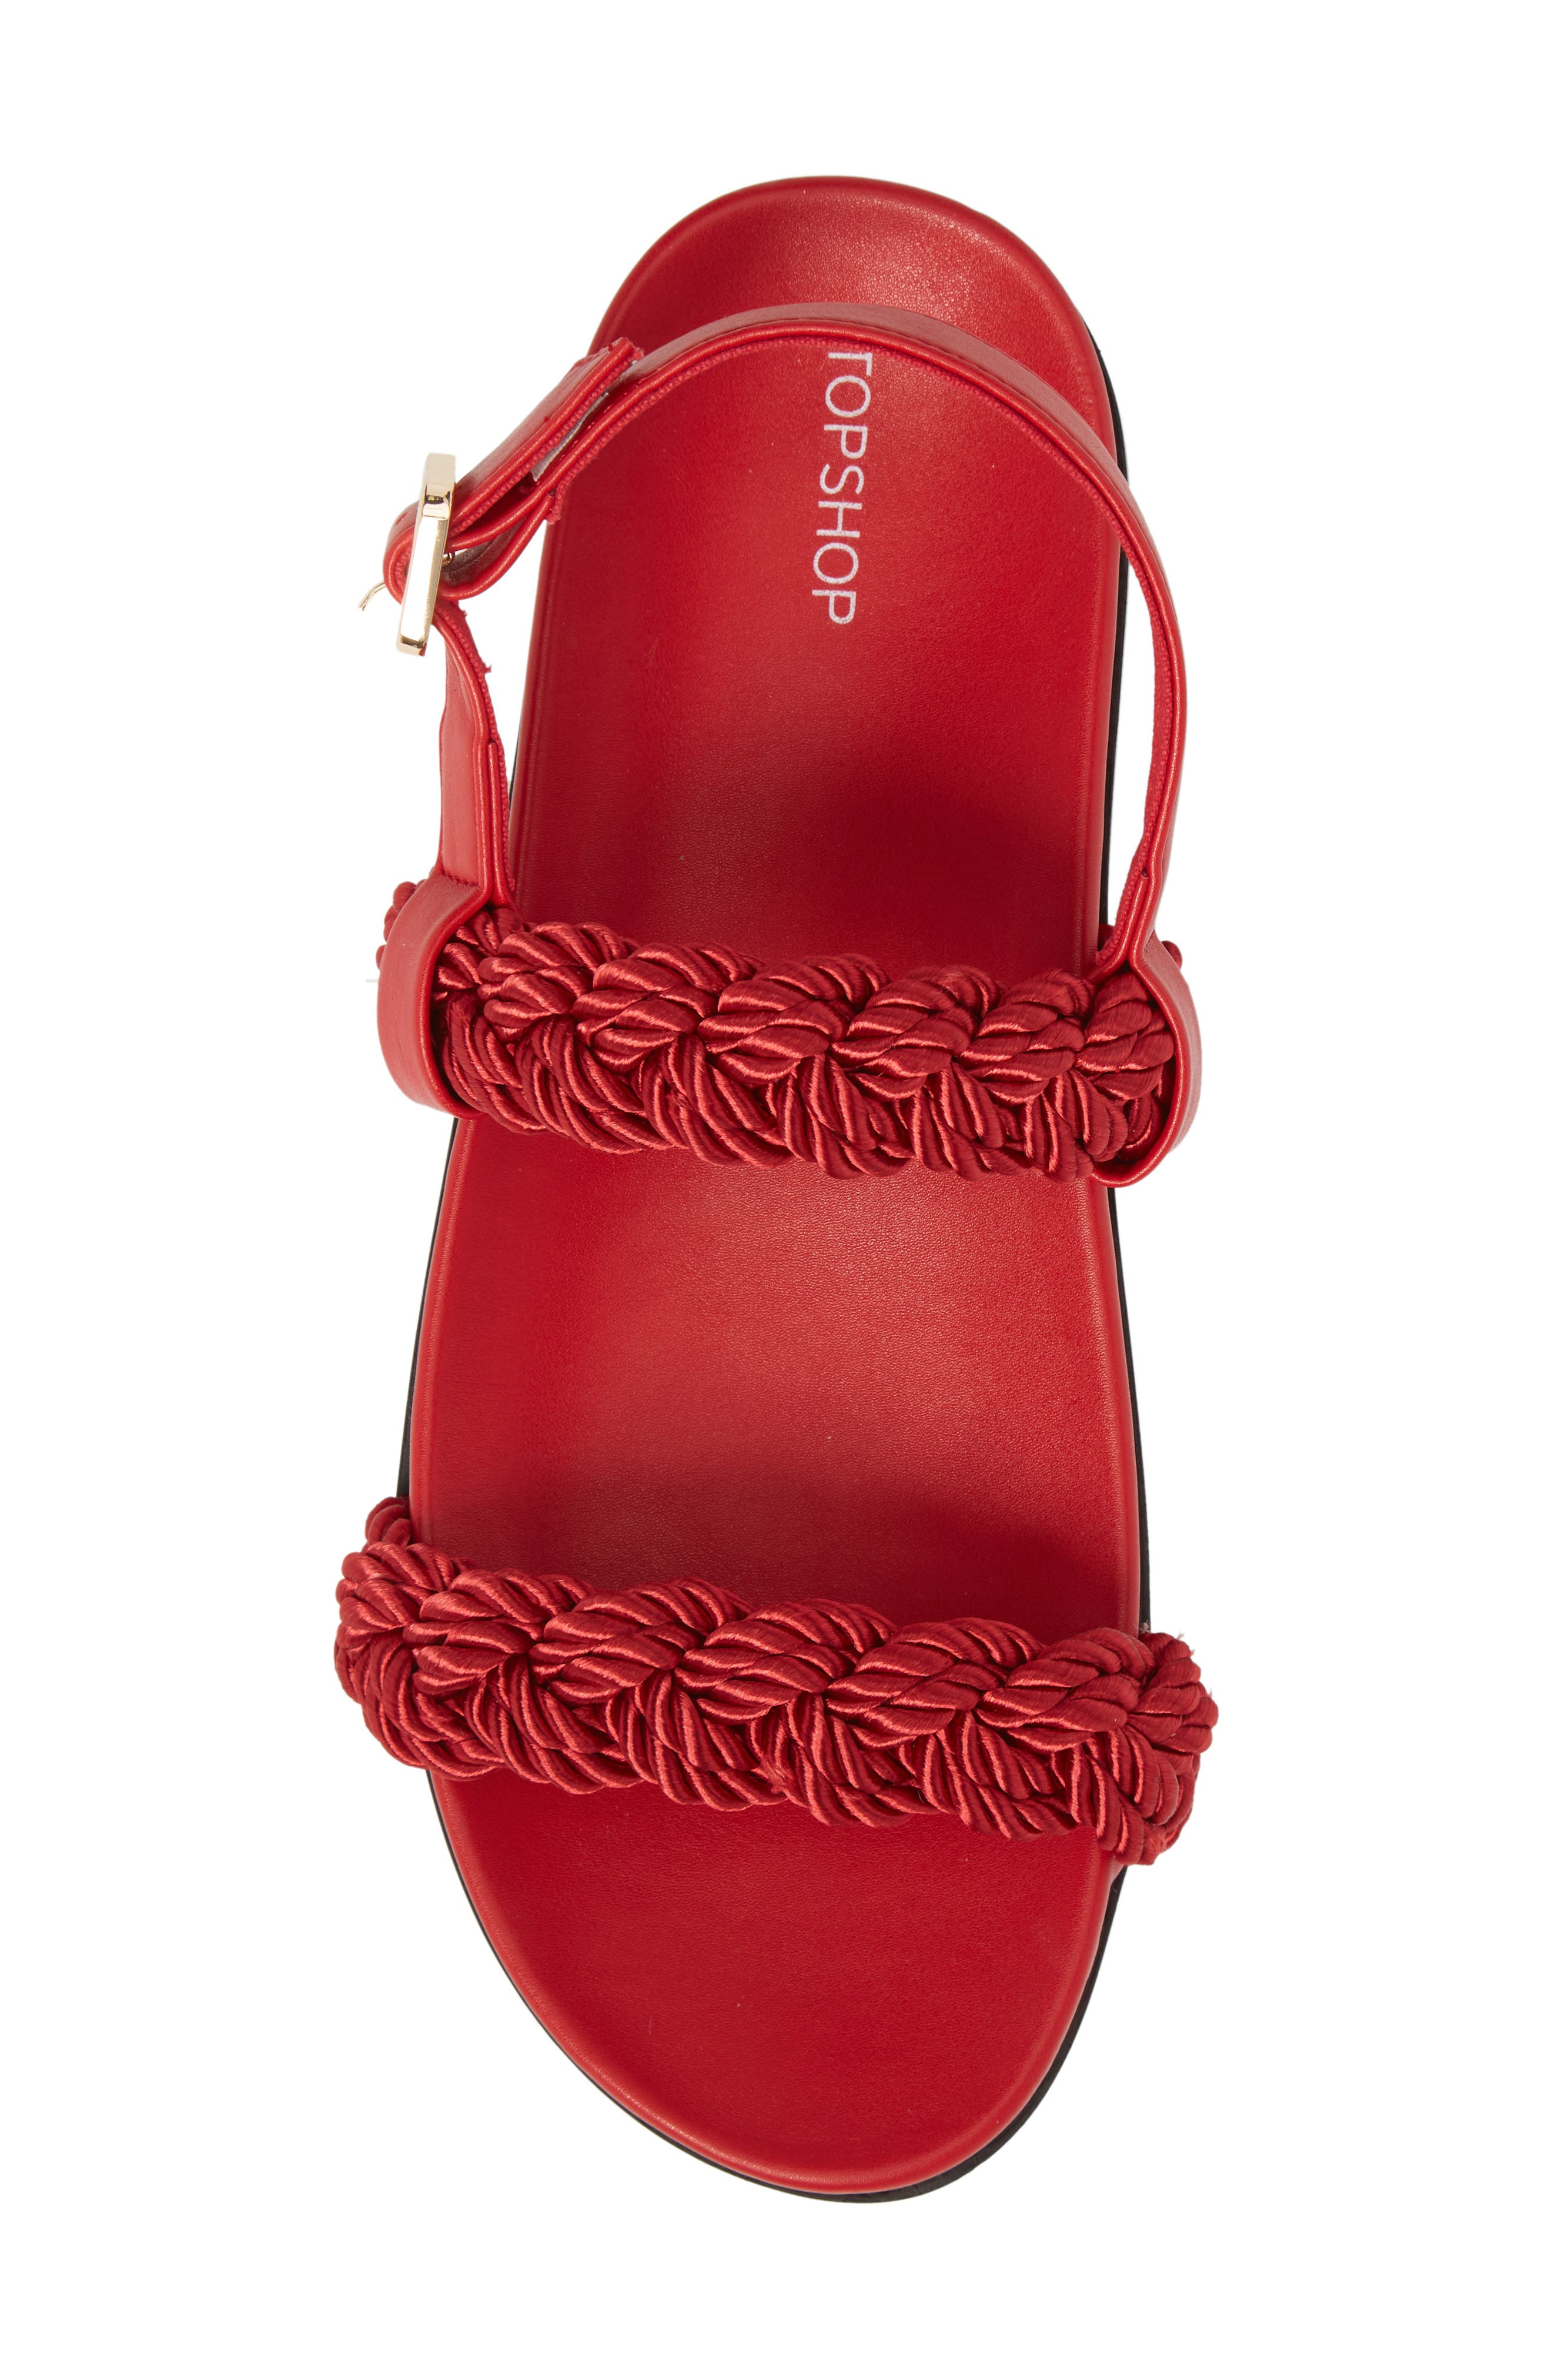 Hackney Rope Footbed Sandals,                             Alternate thumbnail 5, color,                             RED